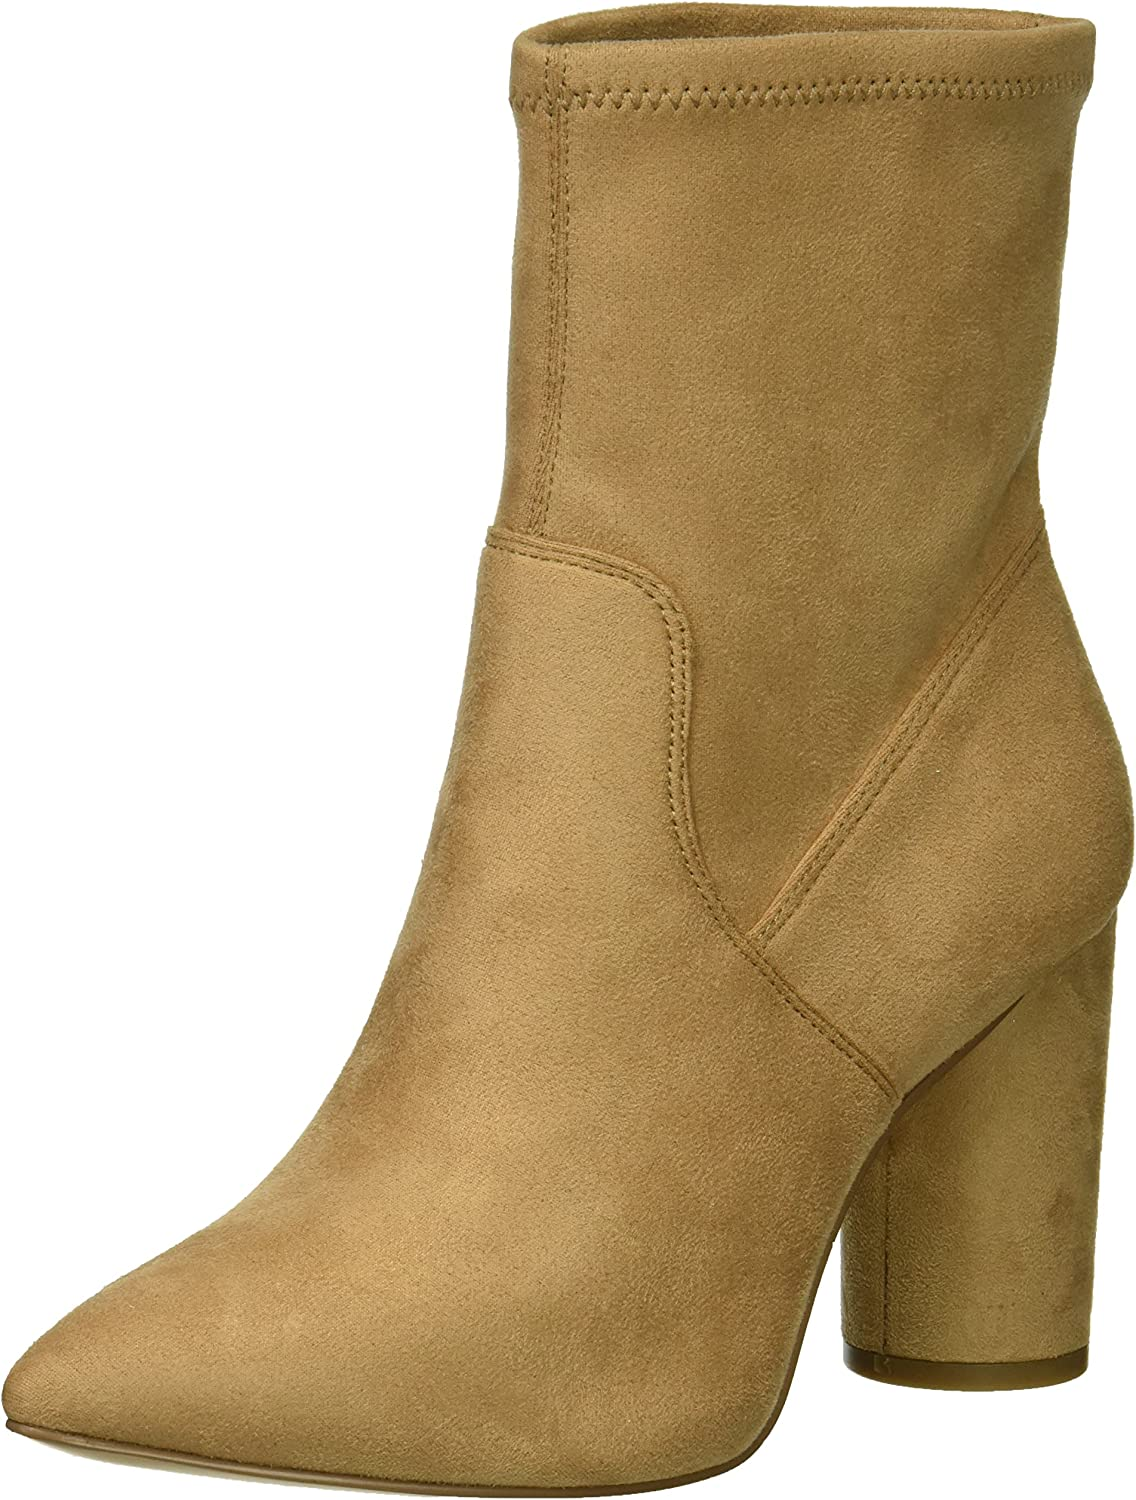 ally pointy toe dress booties